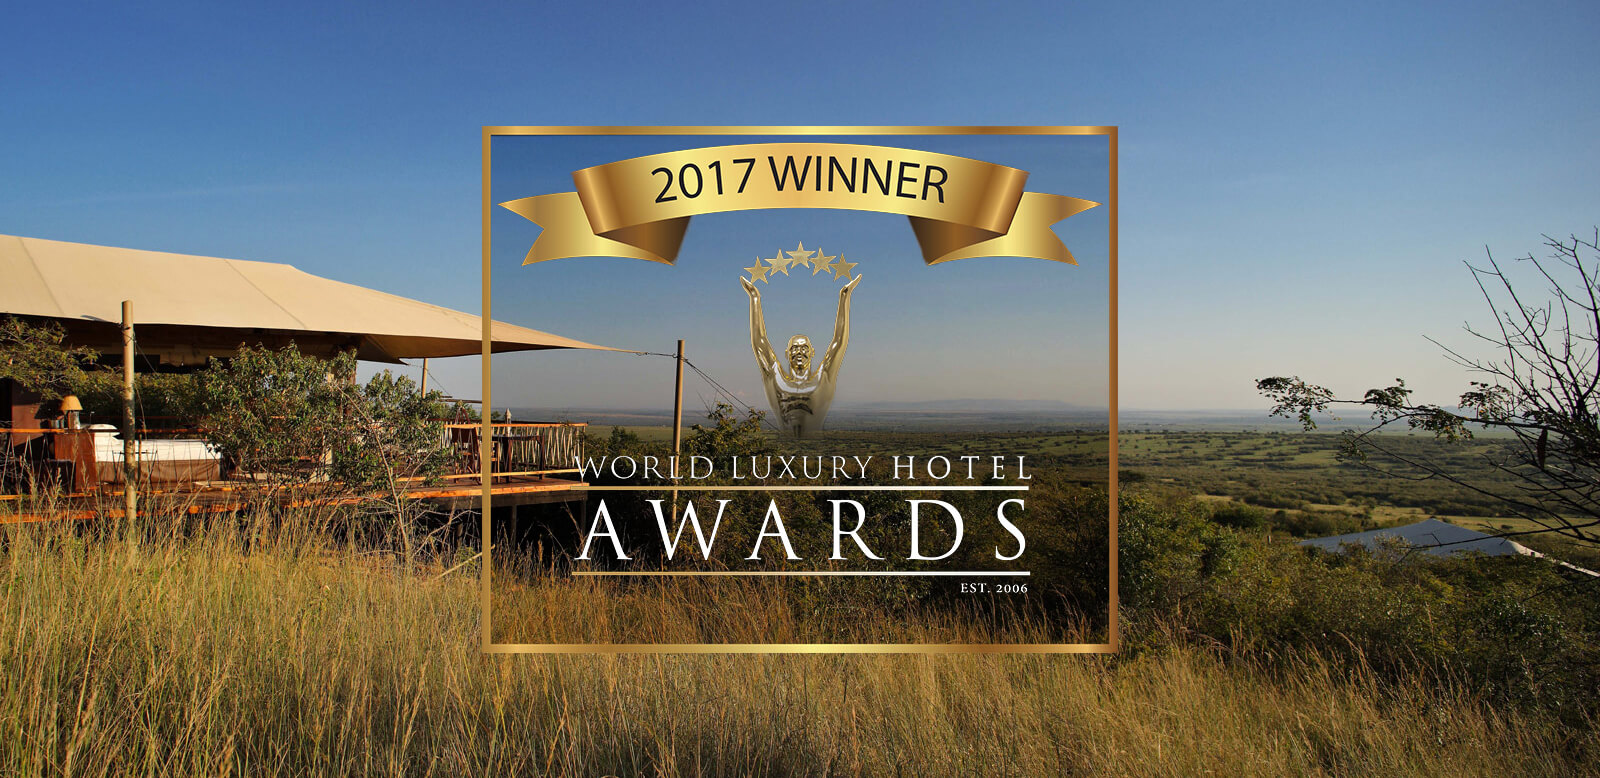 mara bushtops gewinnt world luxury hotel award 2017